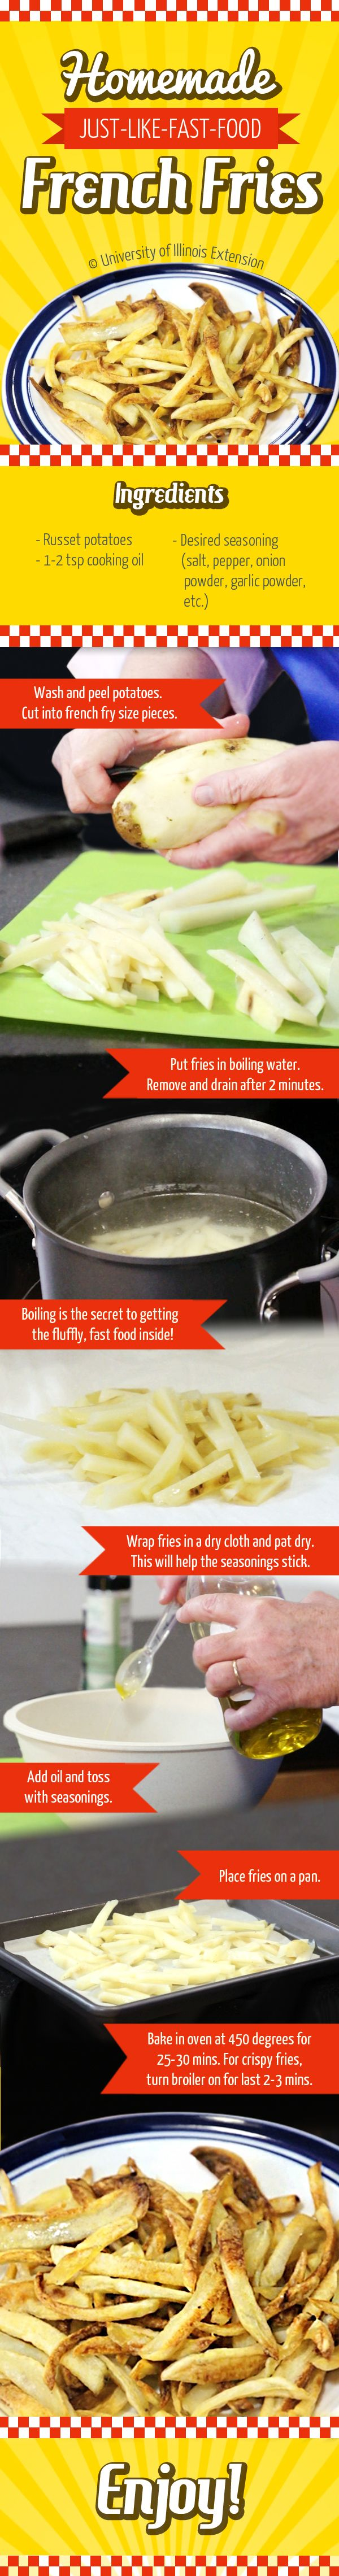 How to Make Just-Like-Fast-Food French Fries